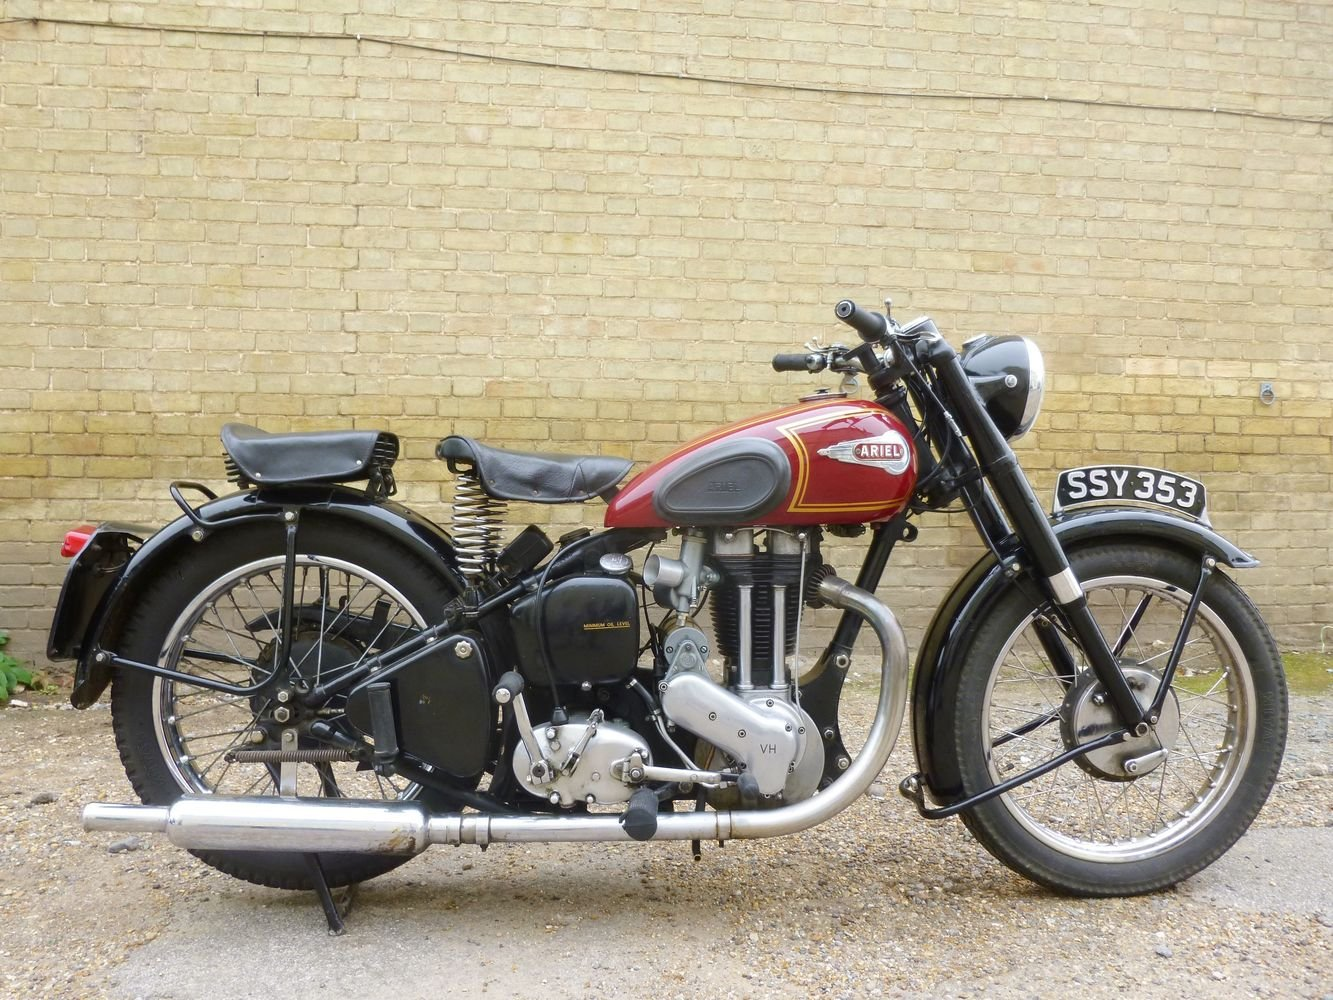 1951 Ariel VH 500cc SOLD (picture 1 of 6)